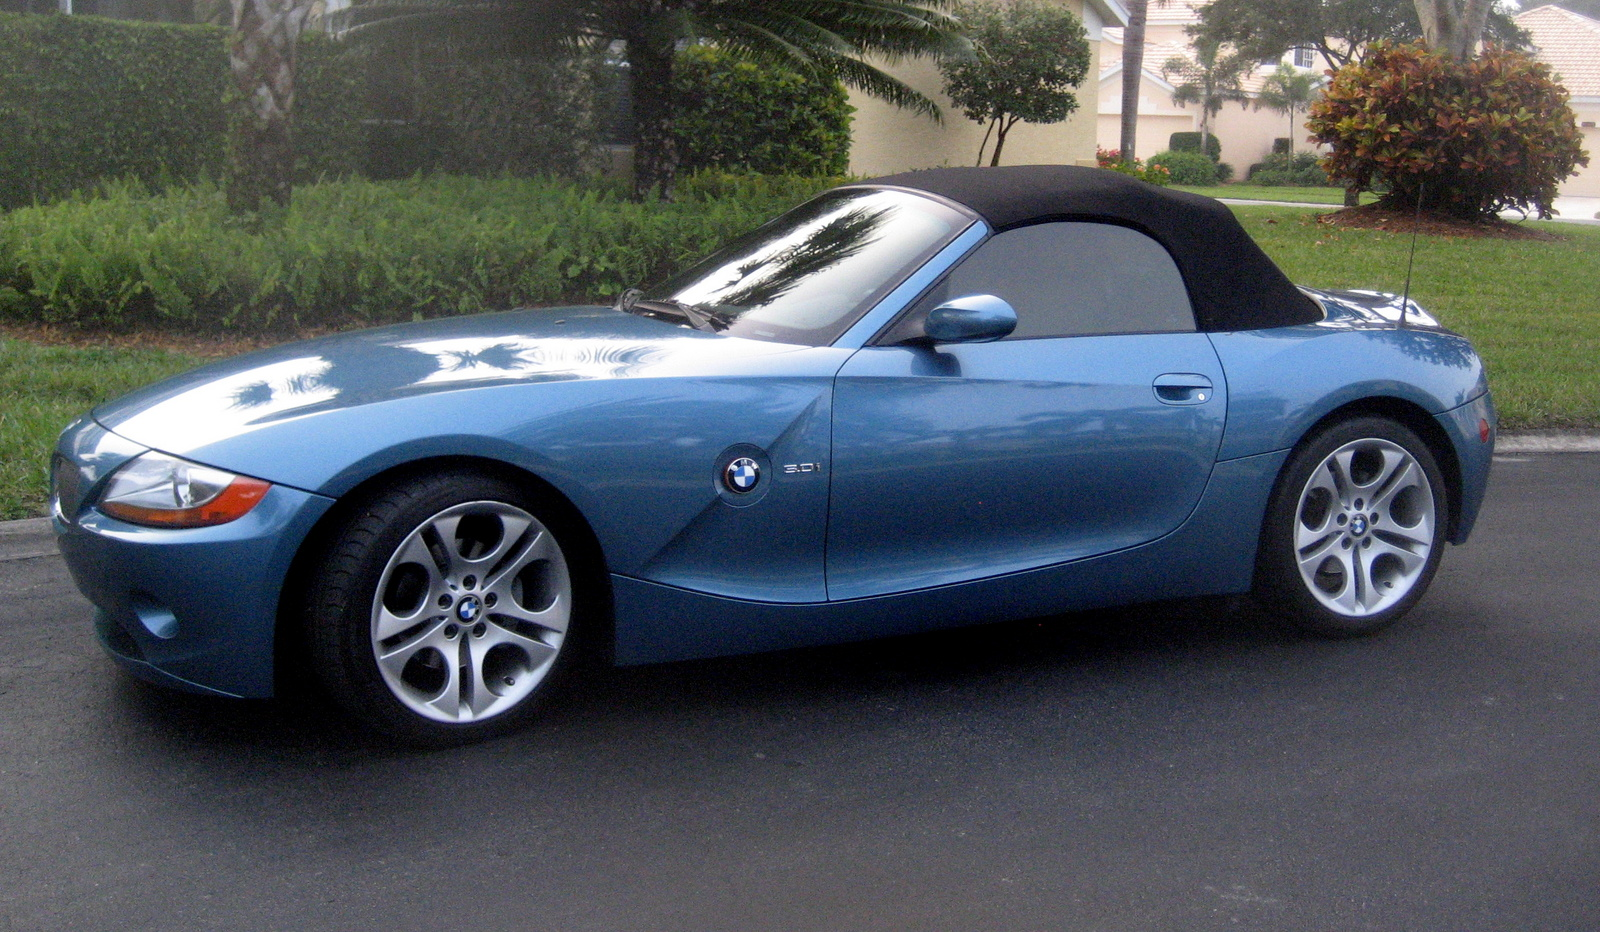 Bmw Z4 2003 Review Amazing Pictures And Images Look At